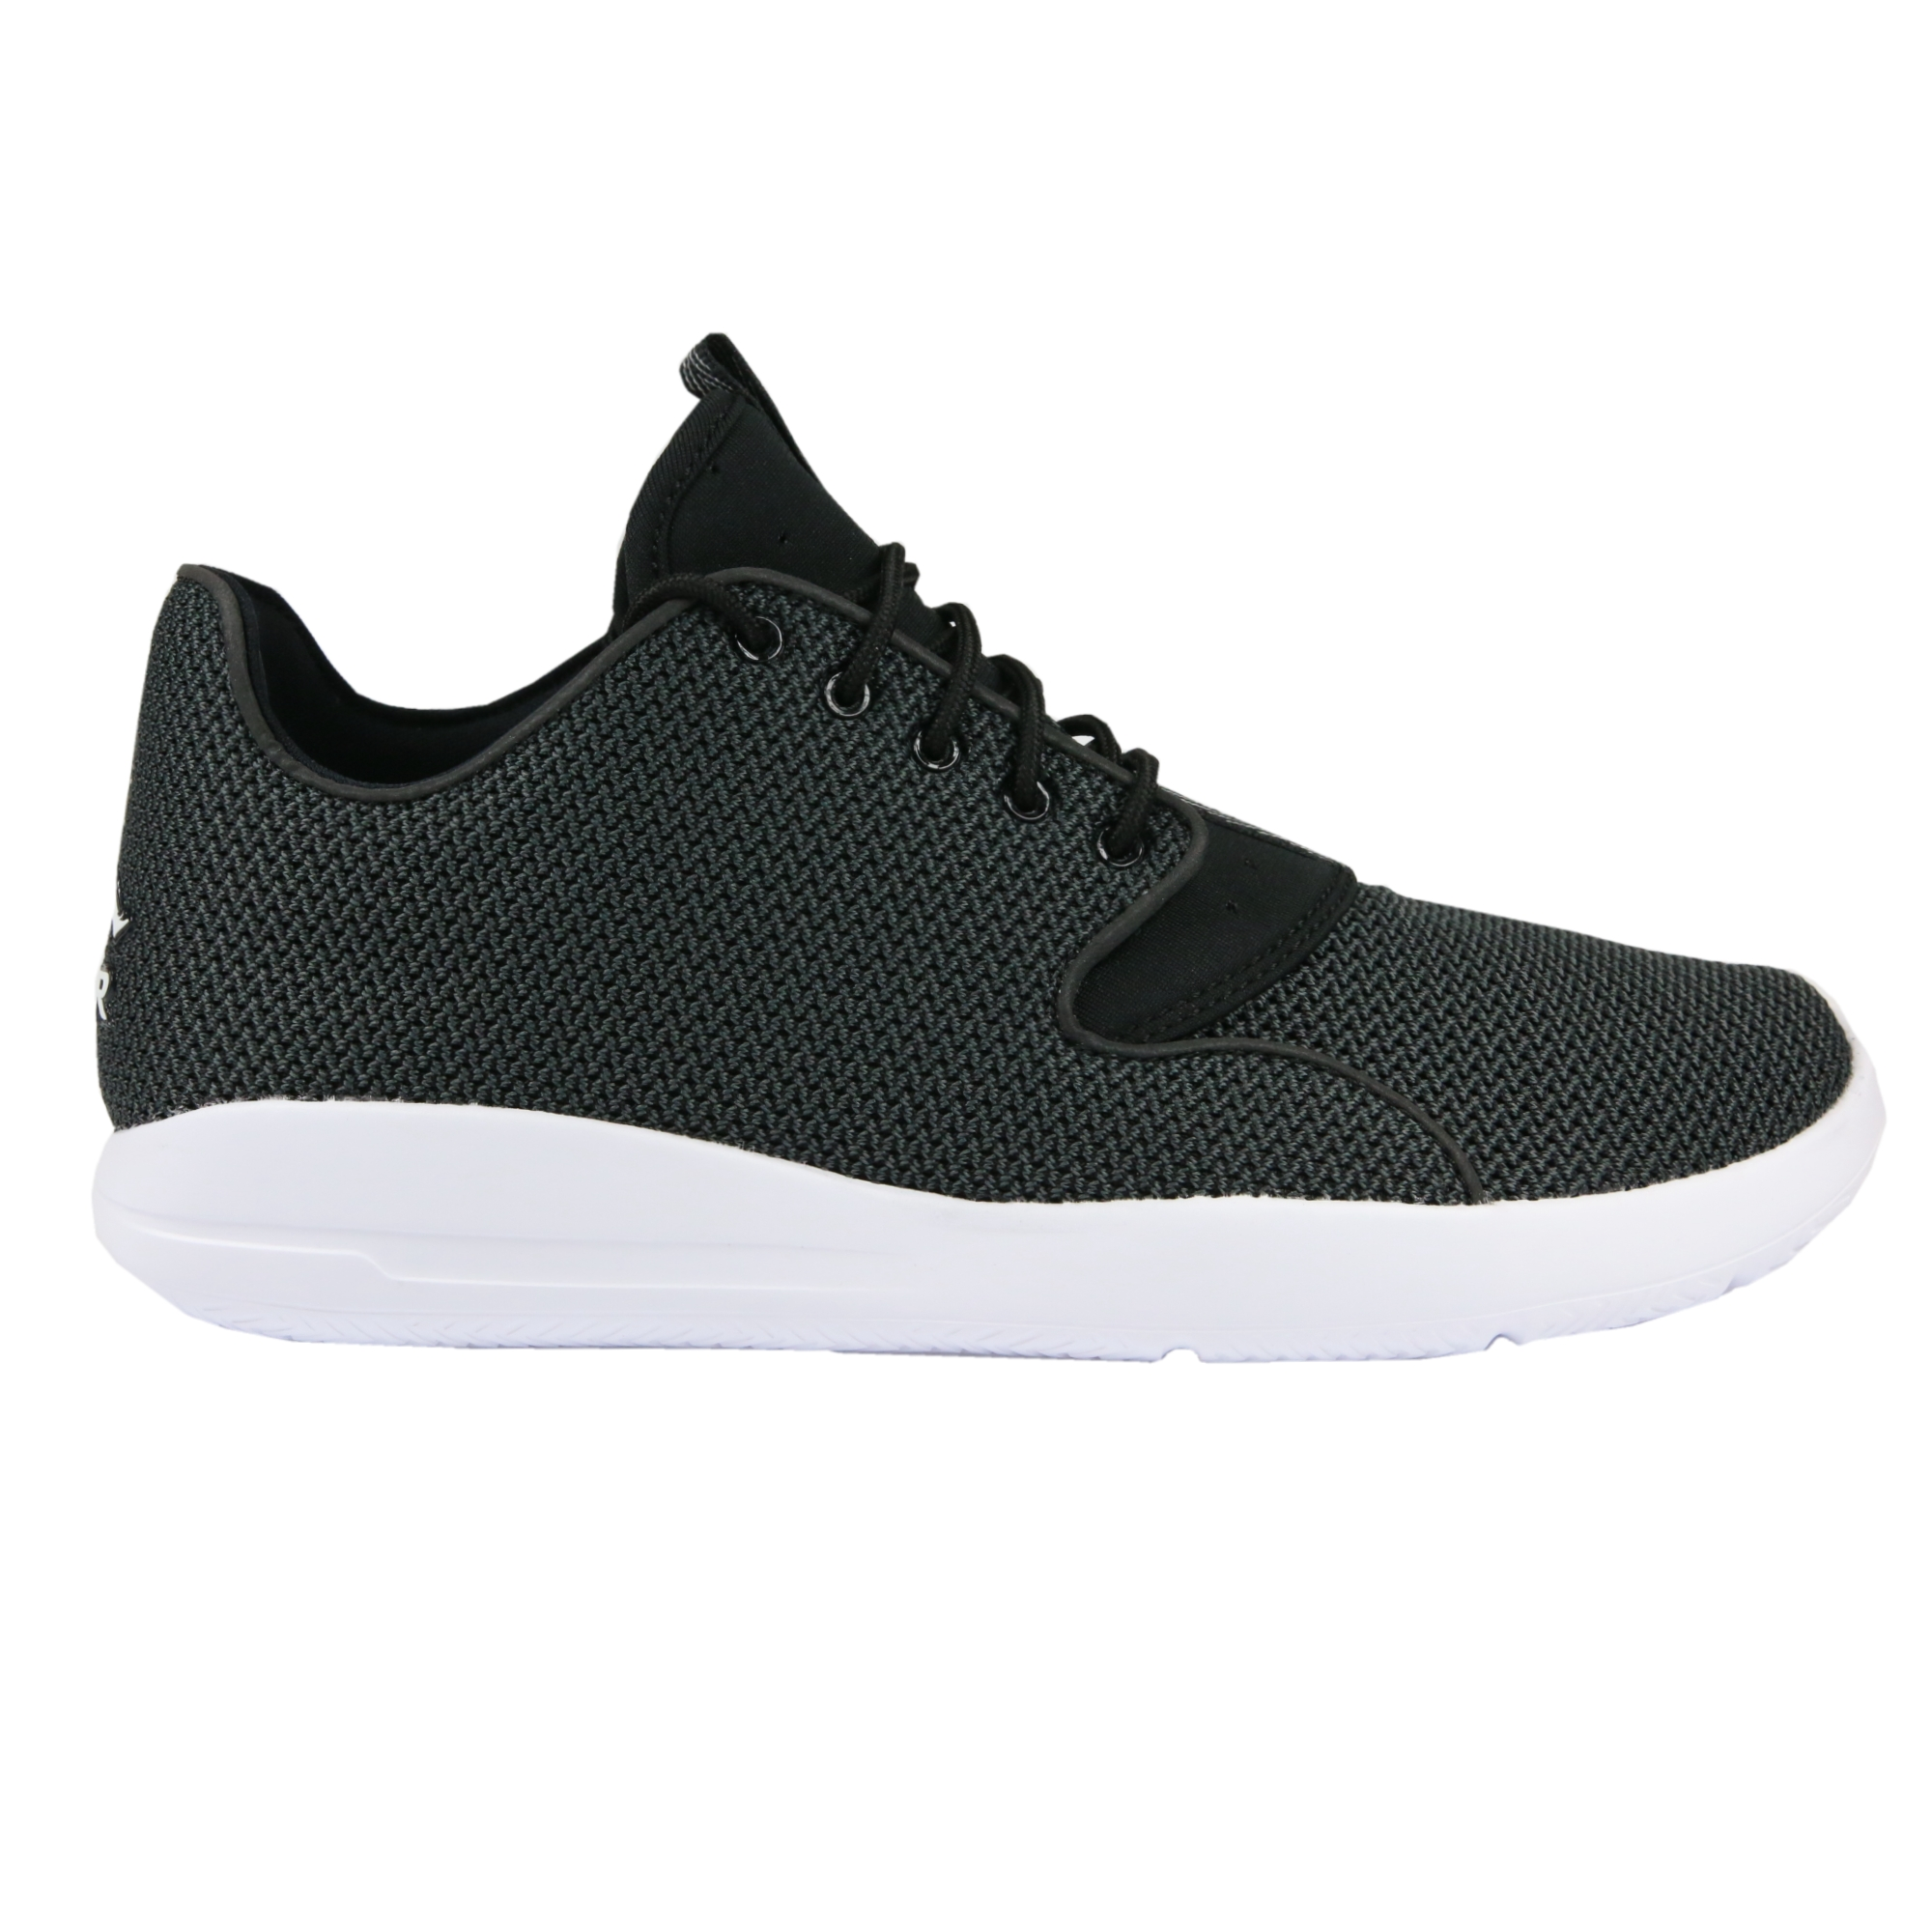 nike jordan eclipse schuhe turnschuhe sneaker herren ebay. Black Bedroom Furniture Sets. Home Design Ideas